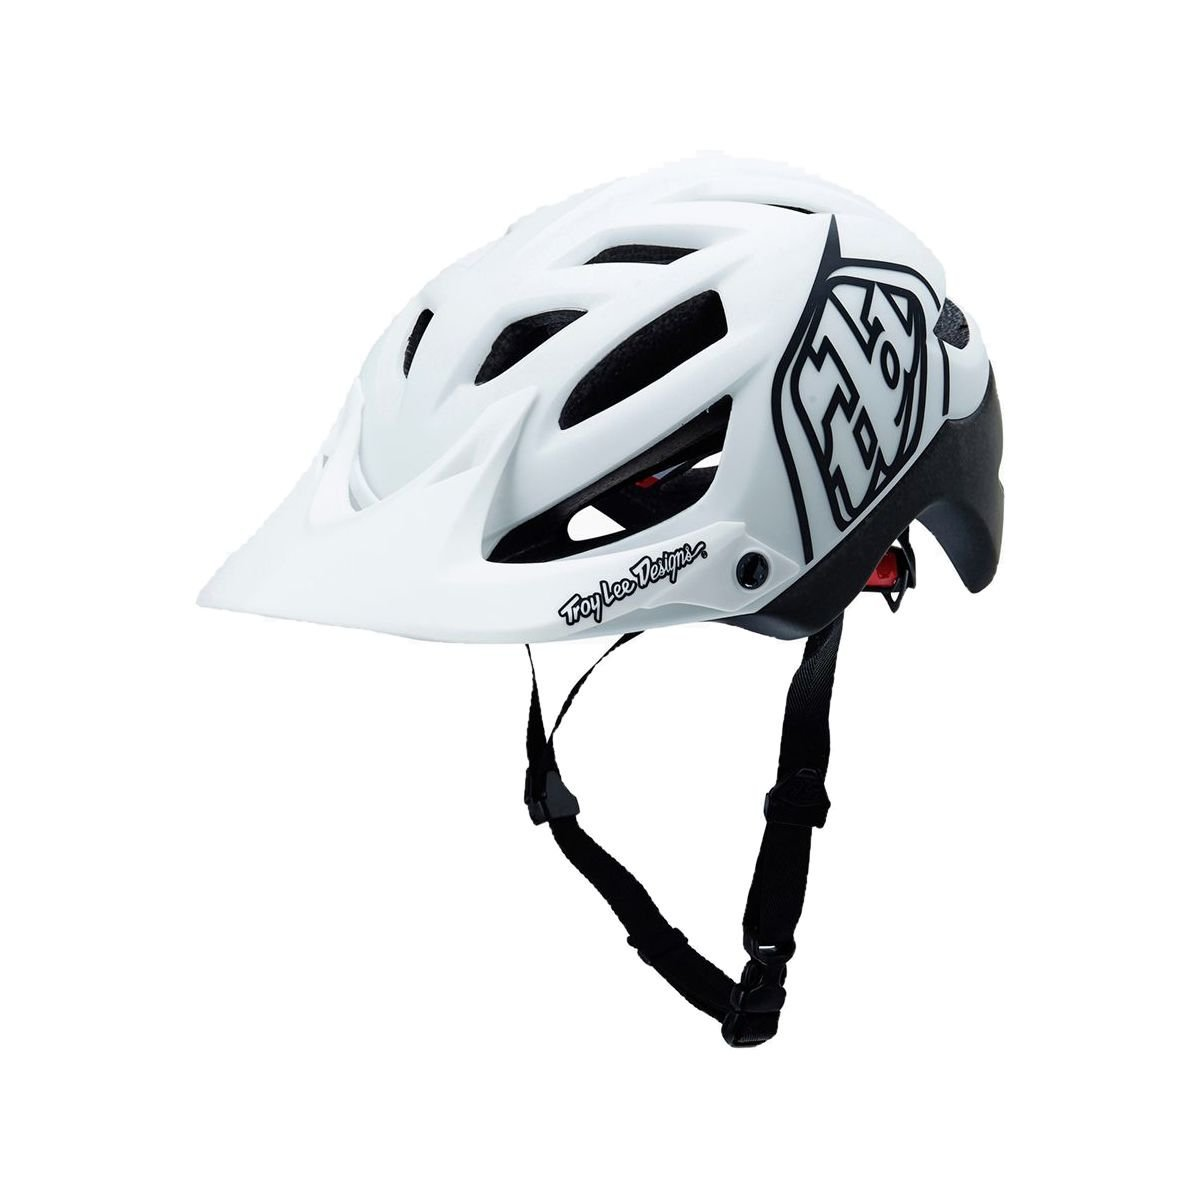 White Troy Lee Designs Bicycle Helmets